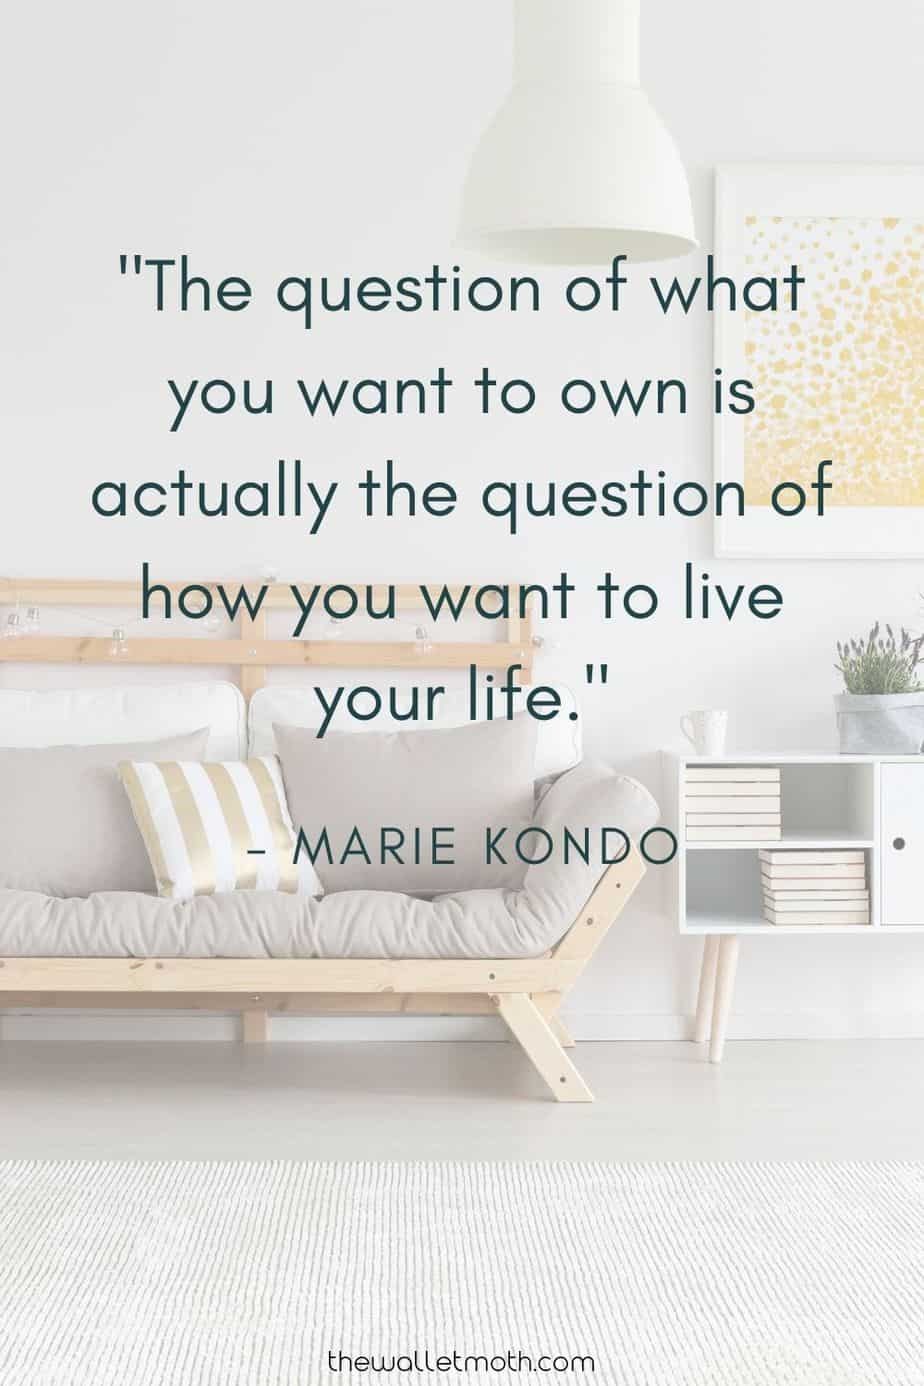 """The question of what you want to own is actually the question of how you want to live your life."" - Marie Kondo"